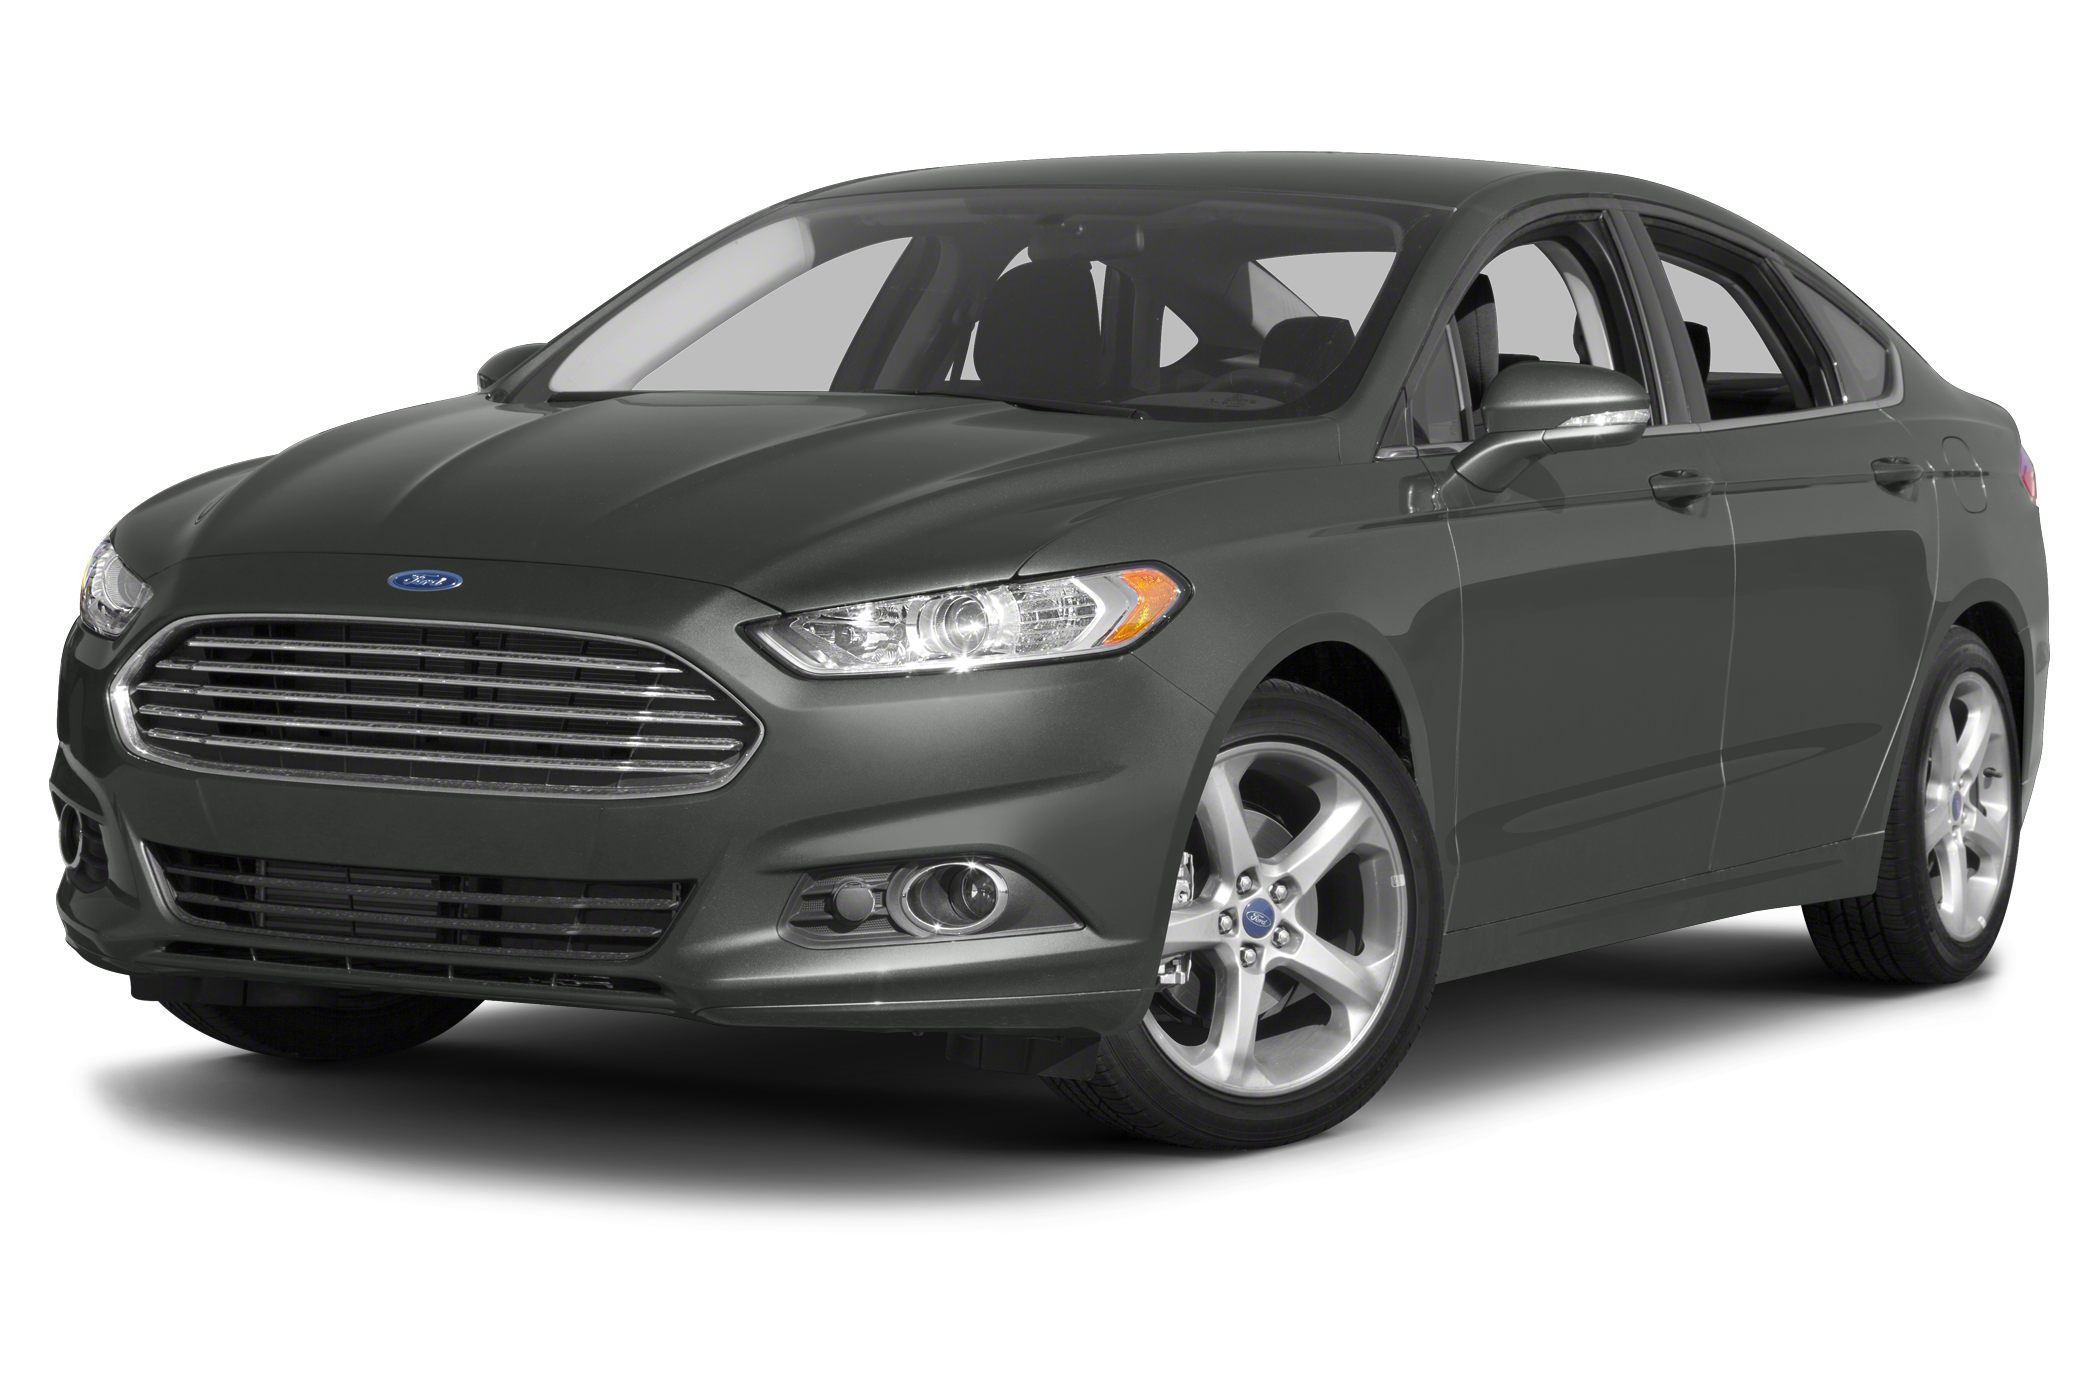 2014 Ford Fusion SE Sedan for sale in Mount Airy for $22,000 with 9,967 miles